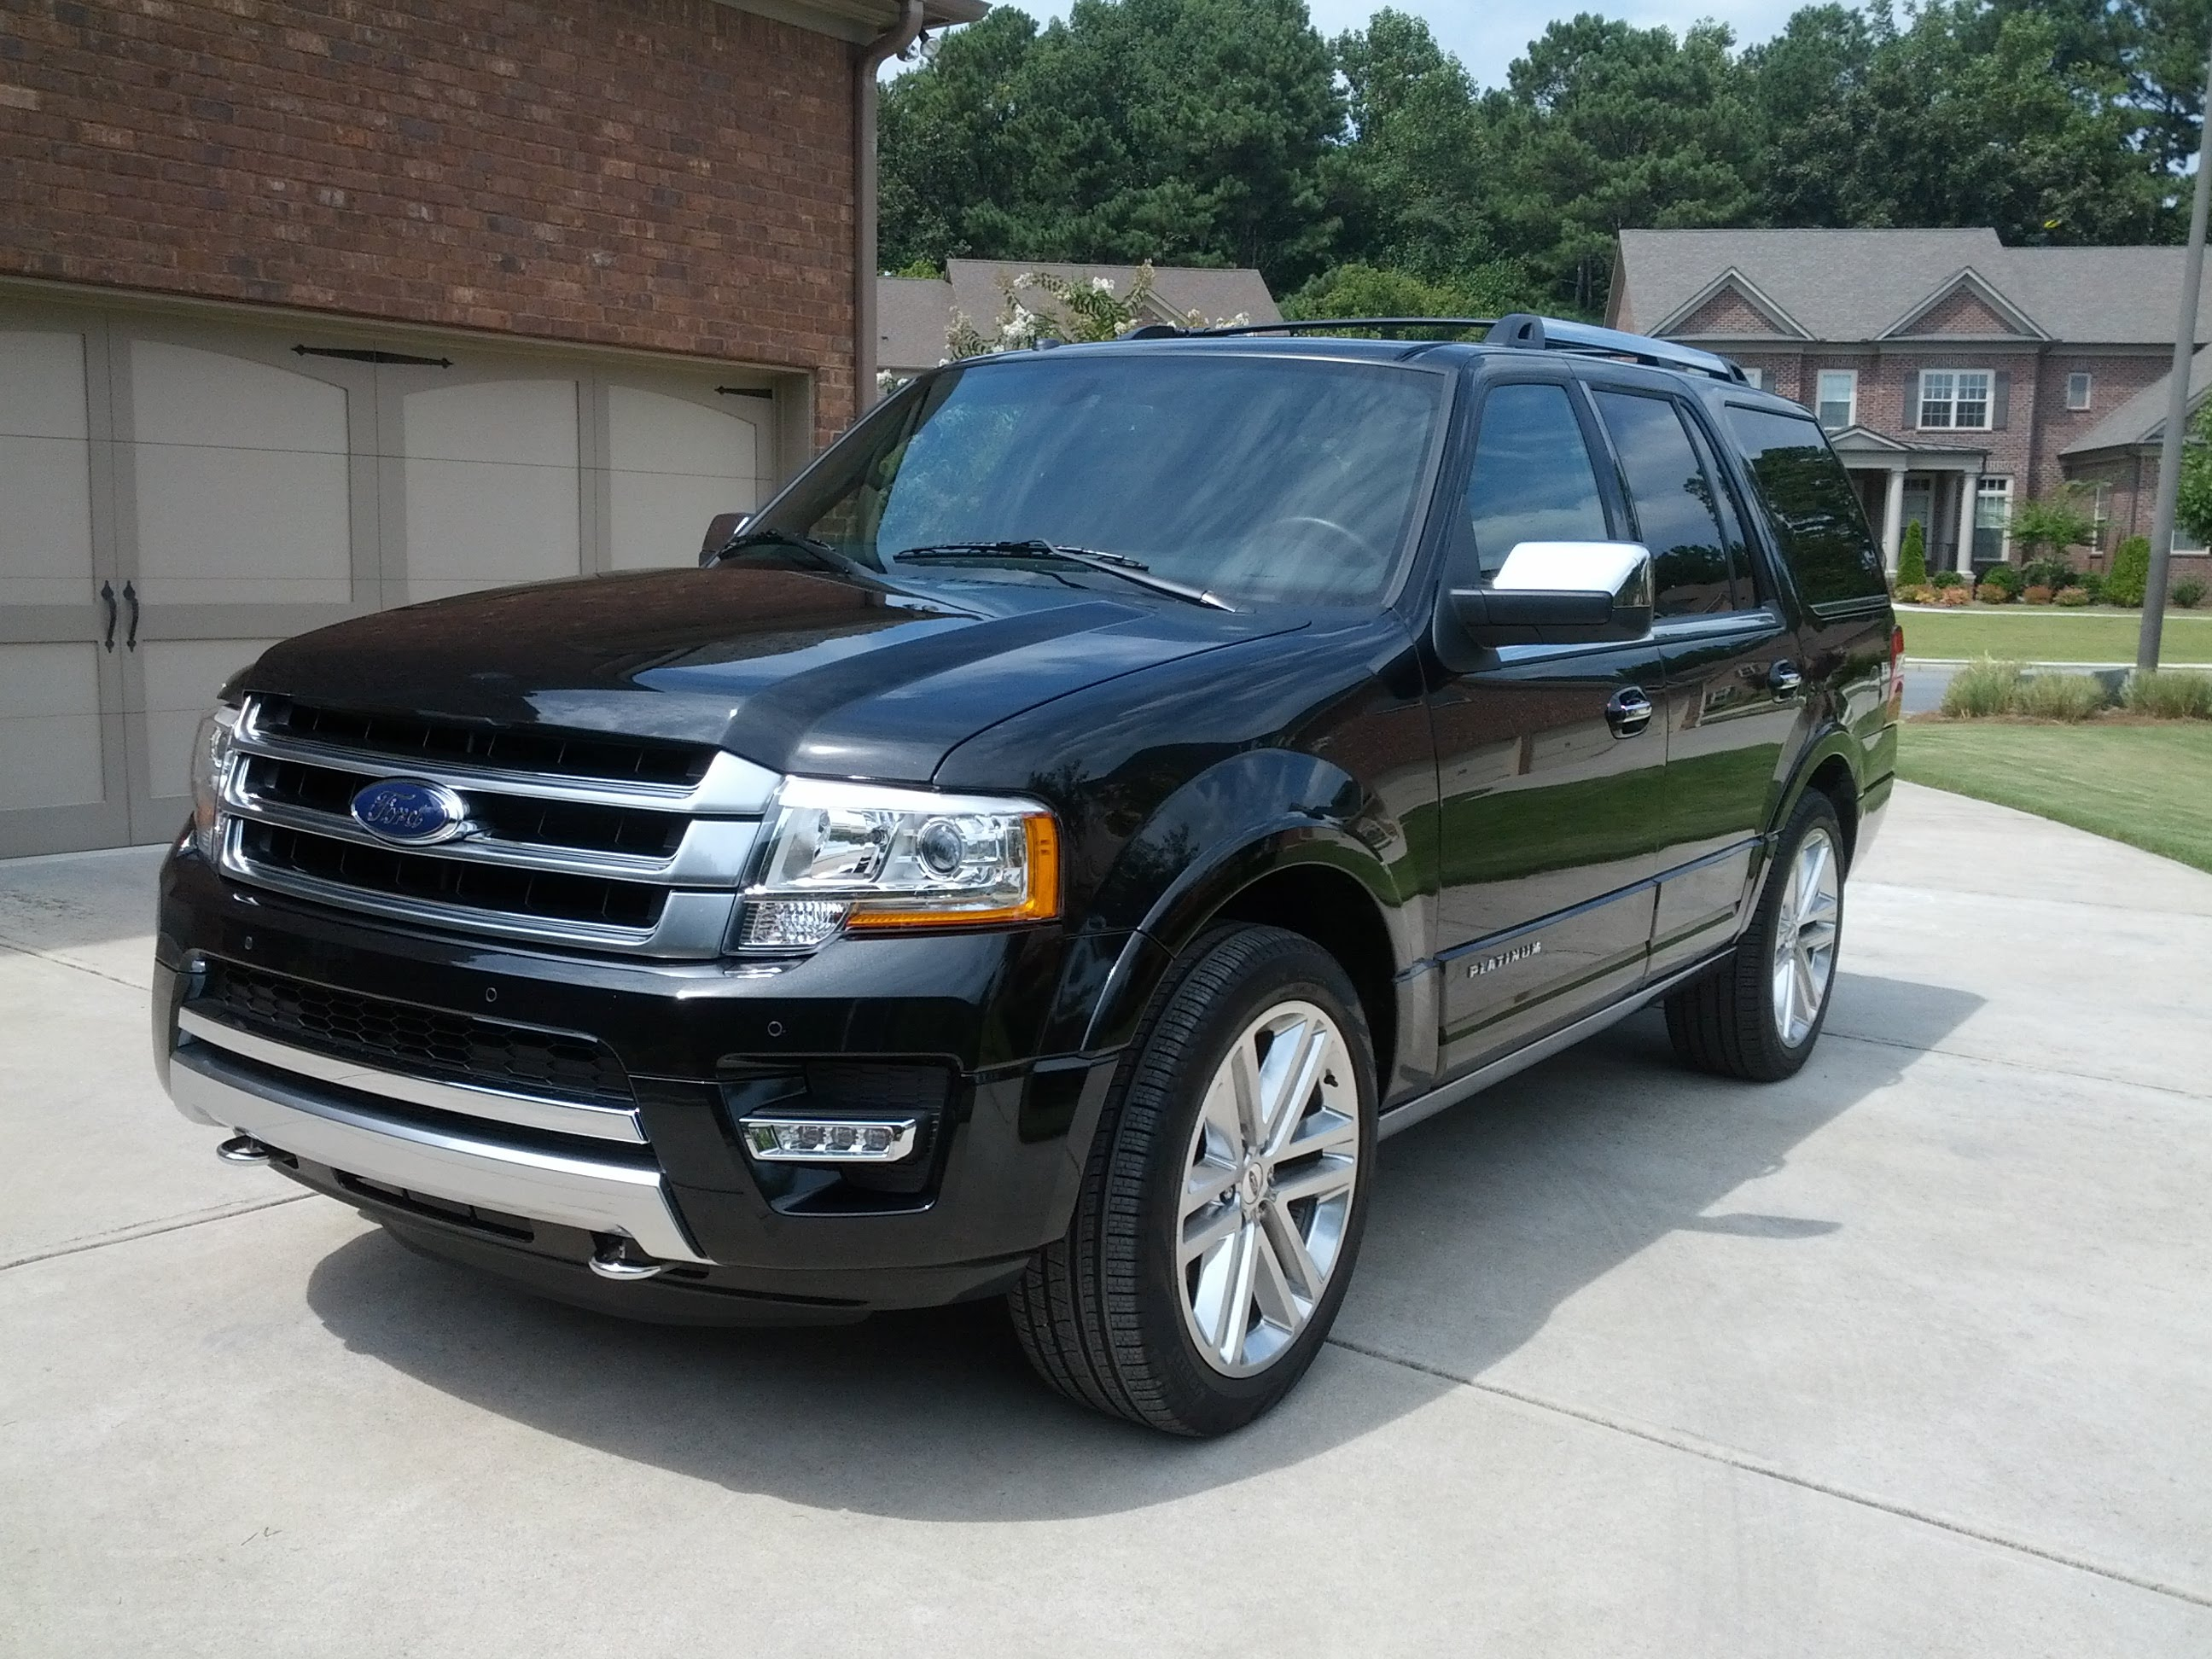 Ford Expedition 2015 Black